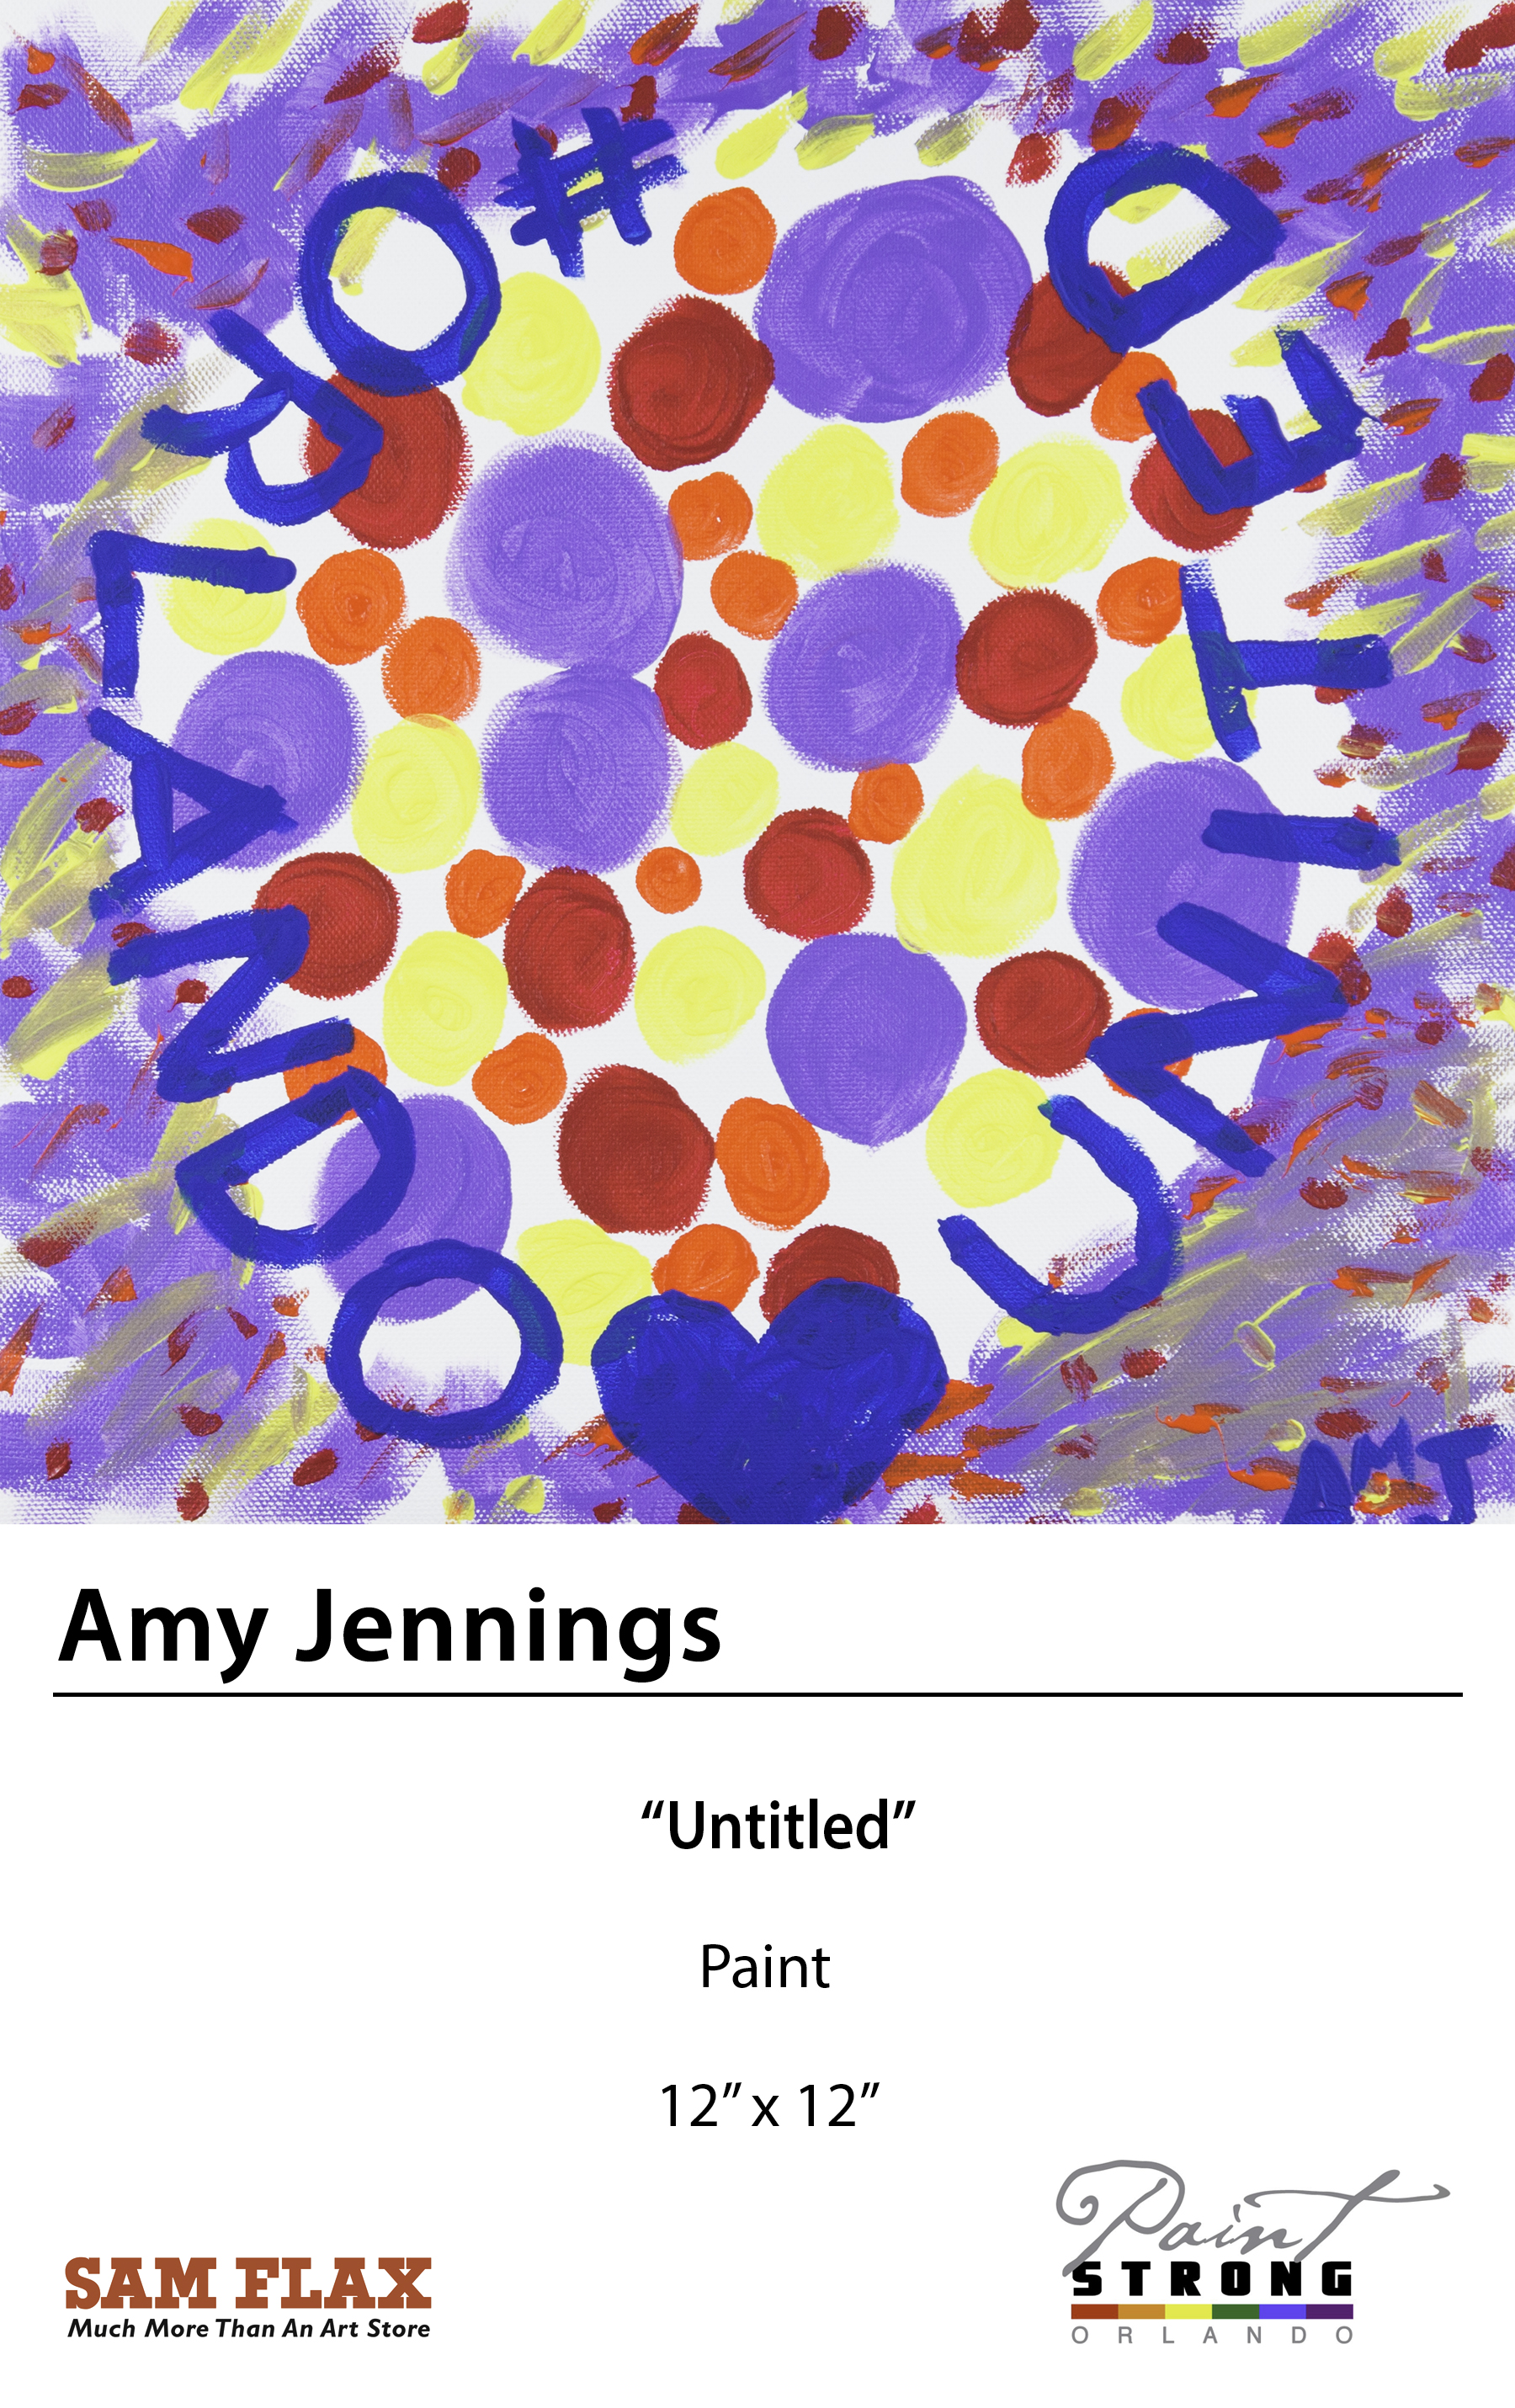 Amy Jennings